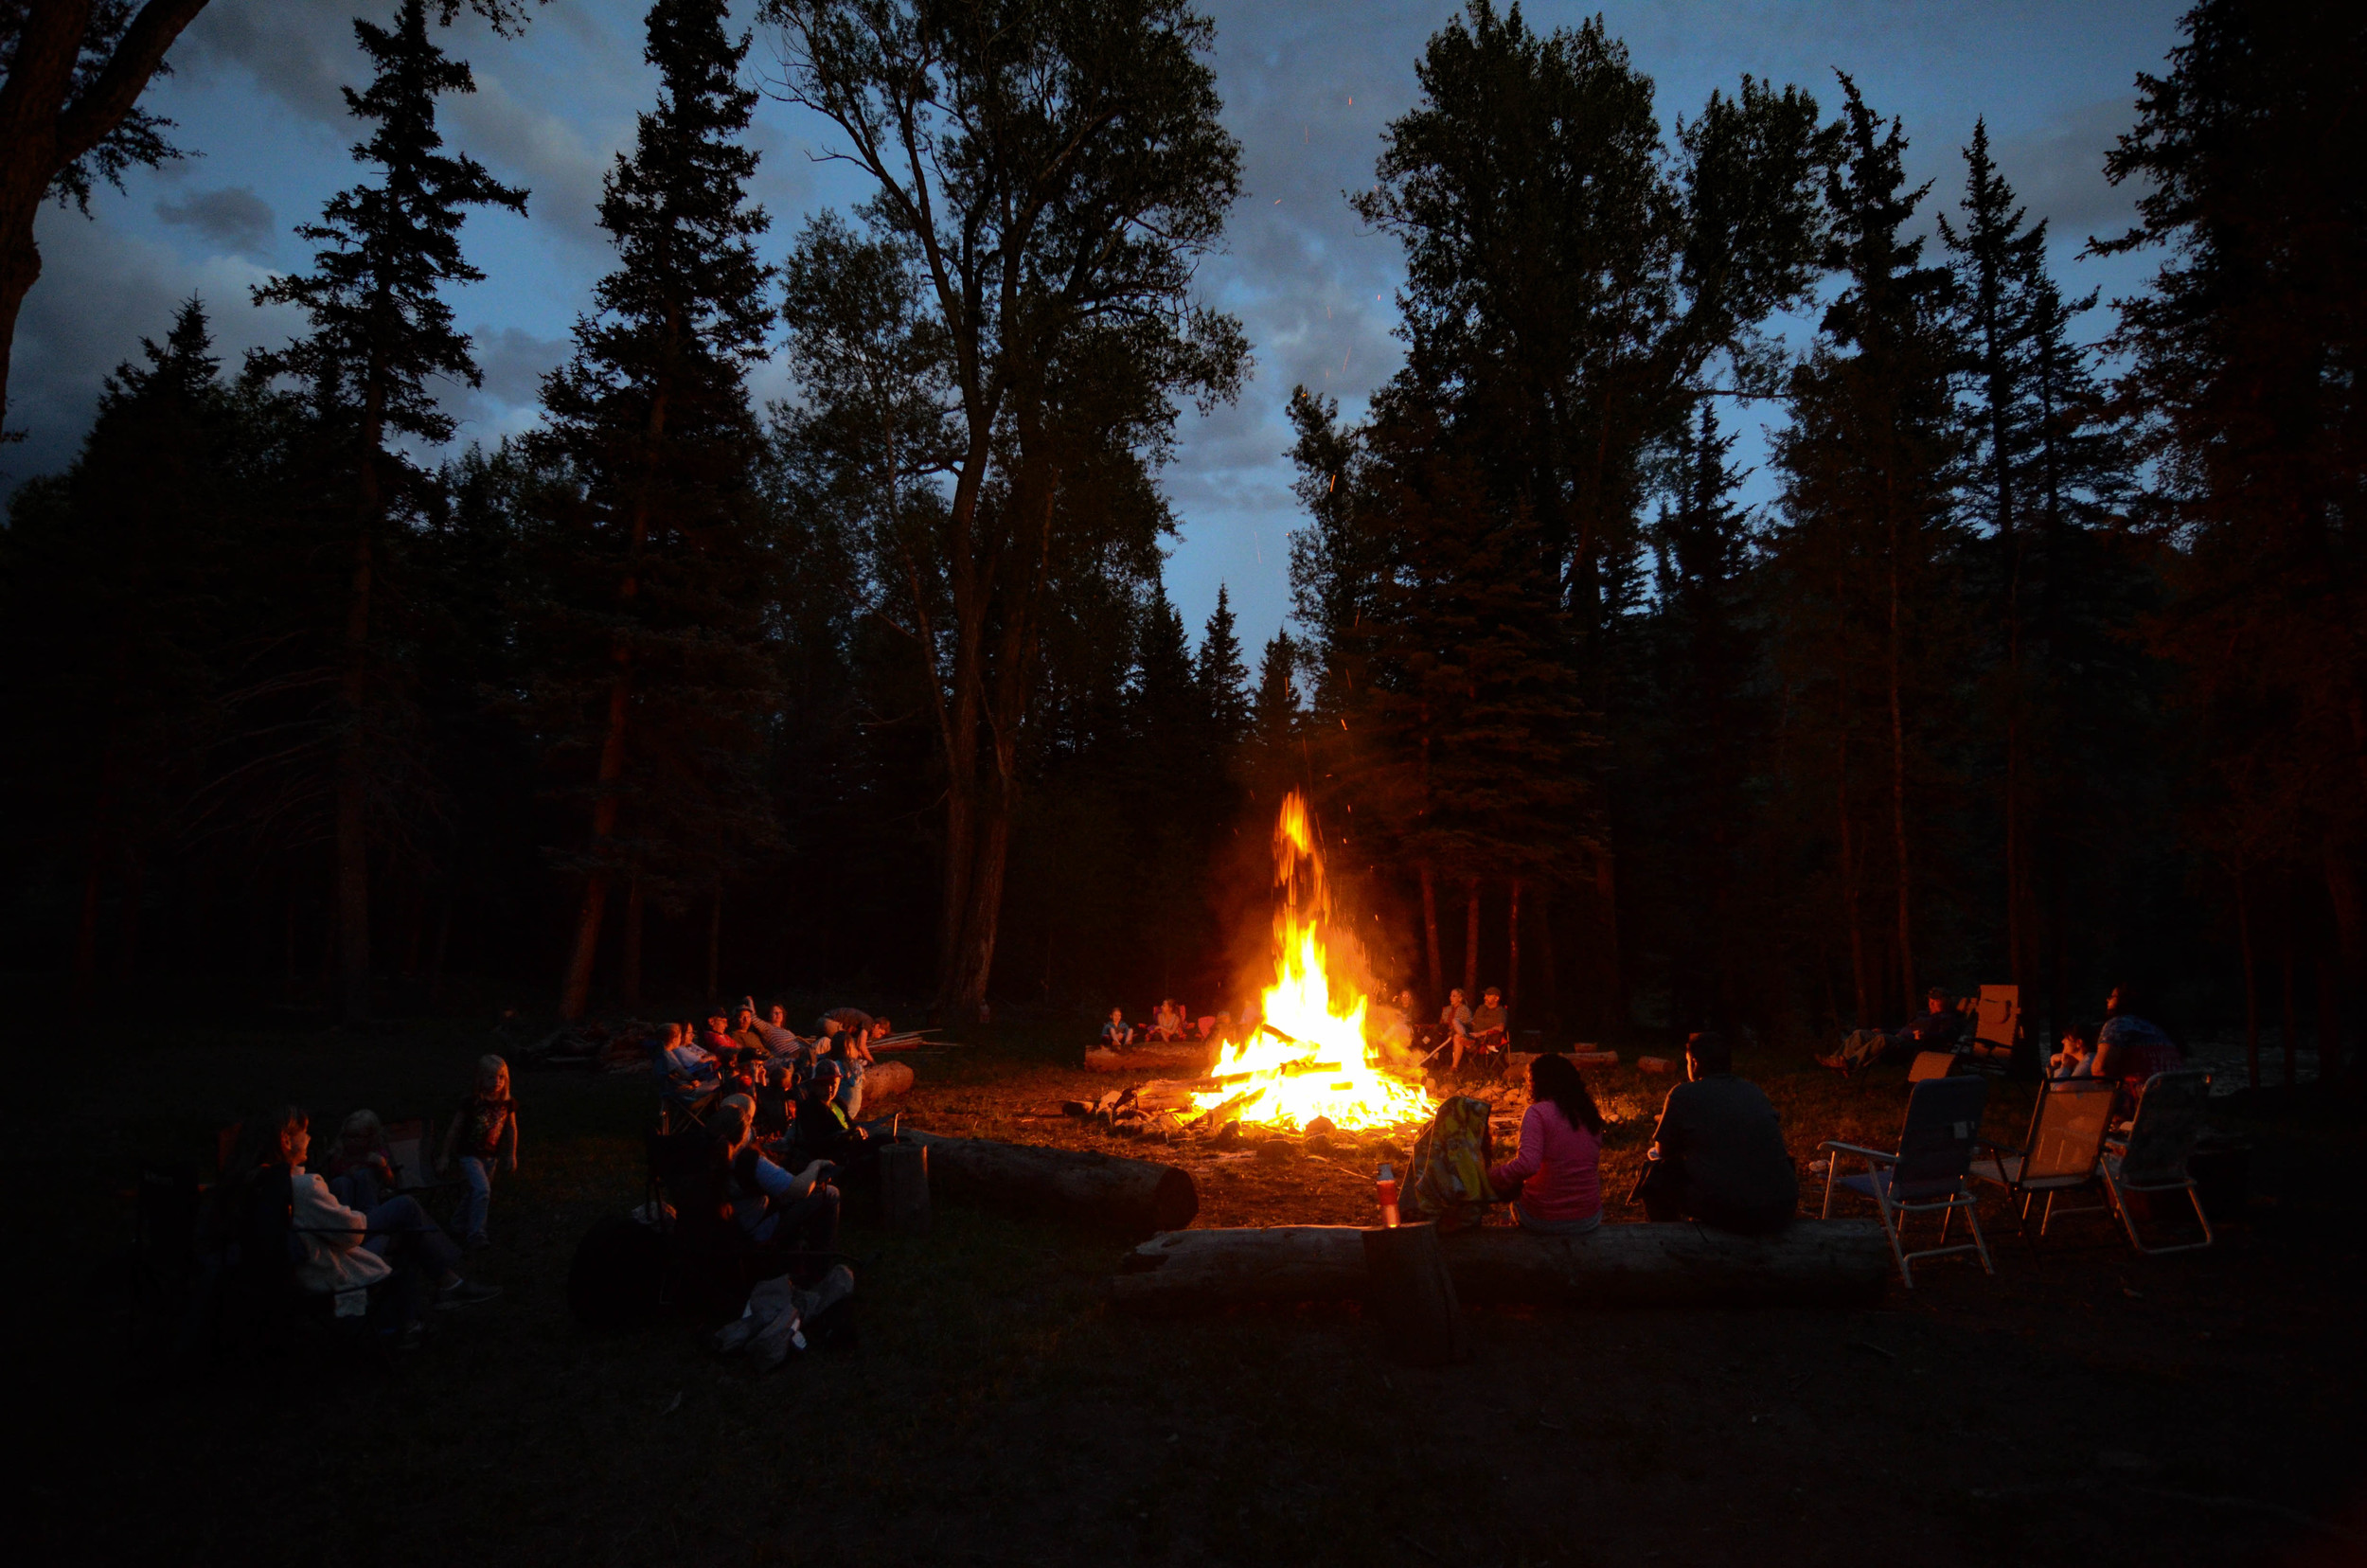 Fellowship around the campfire